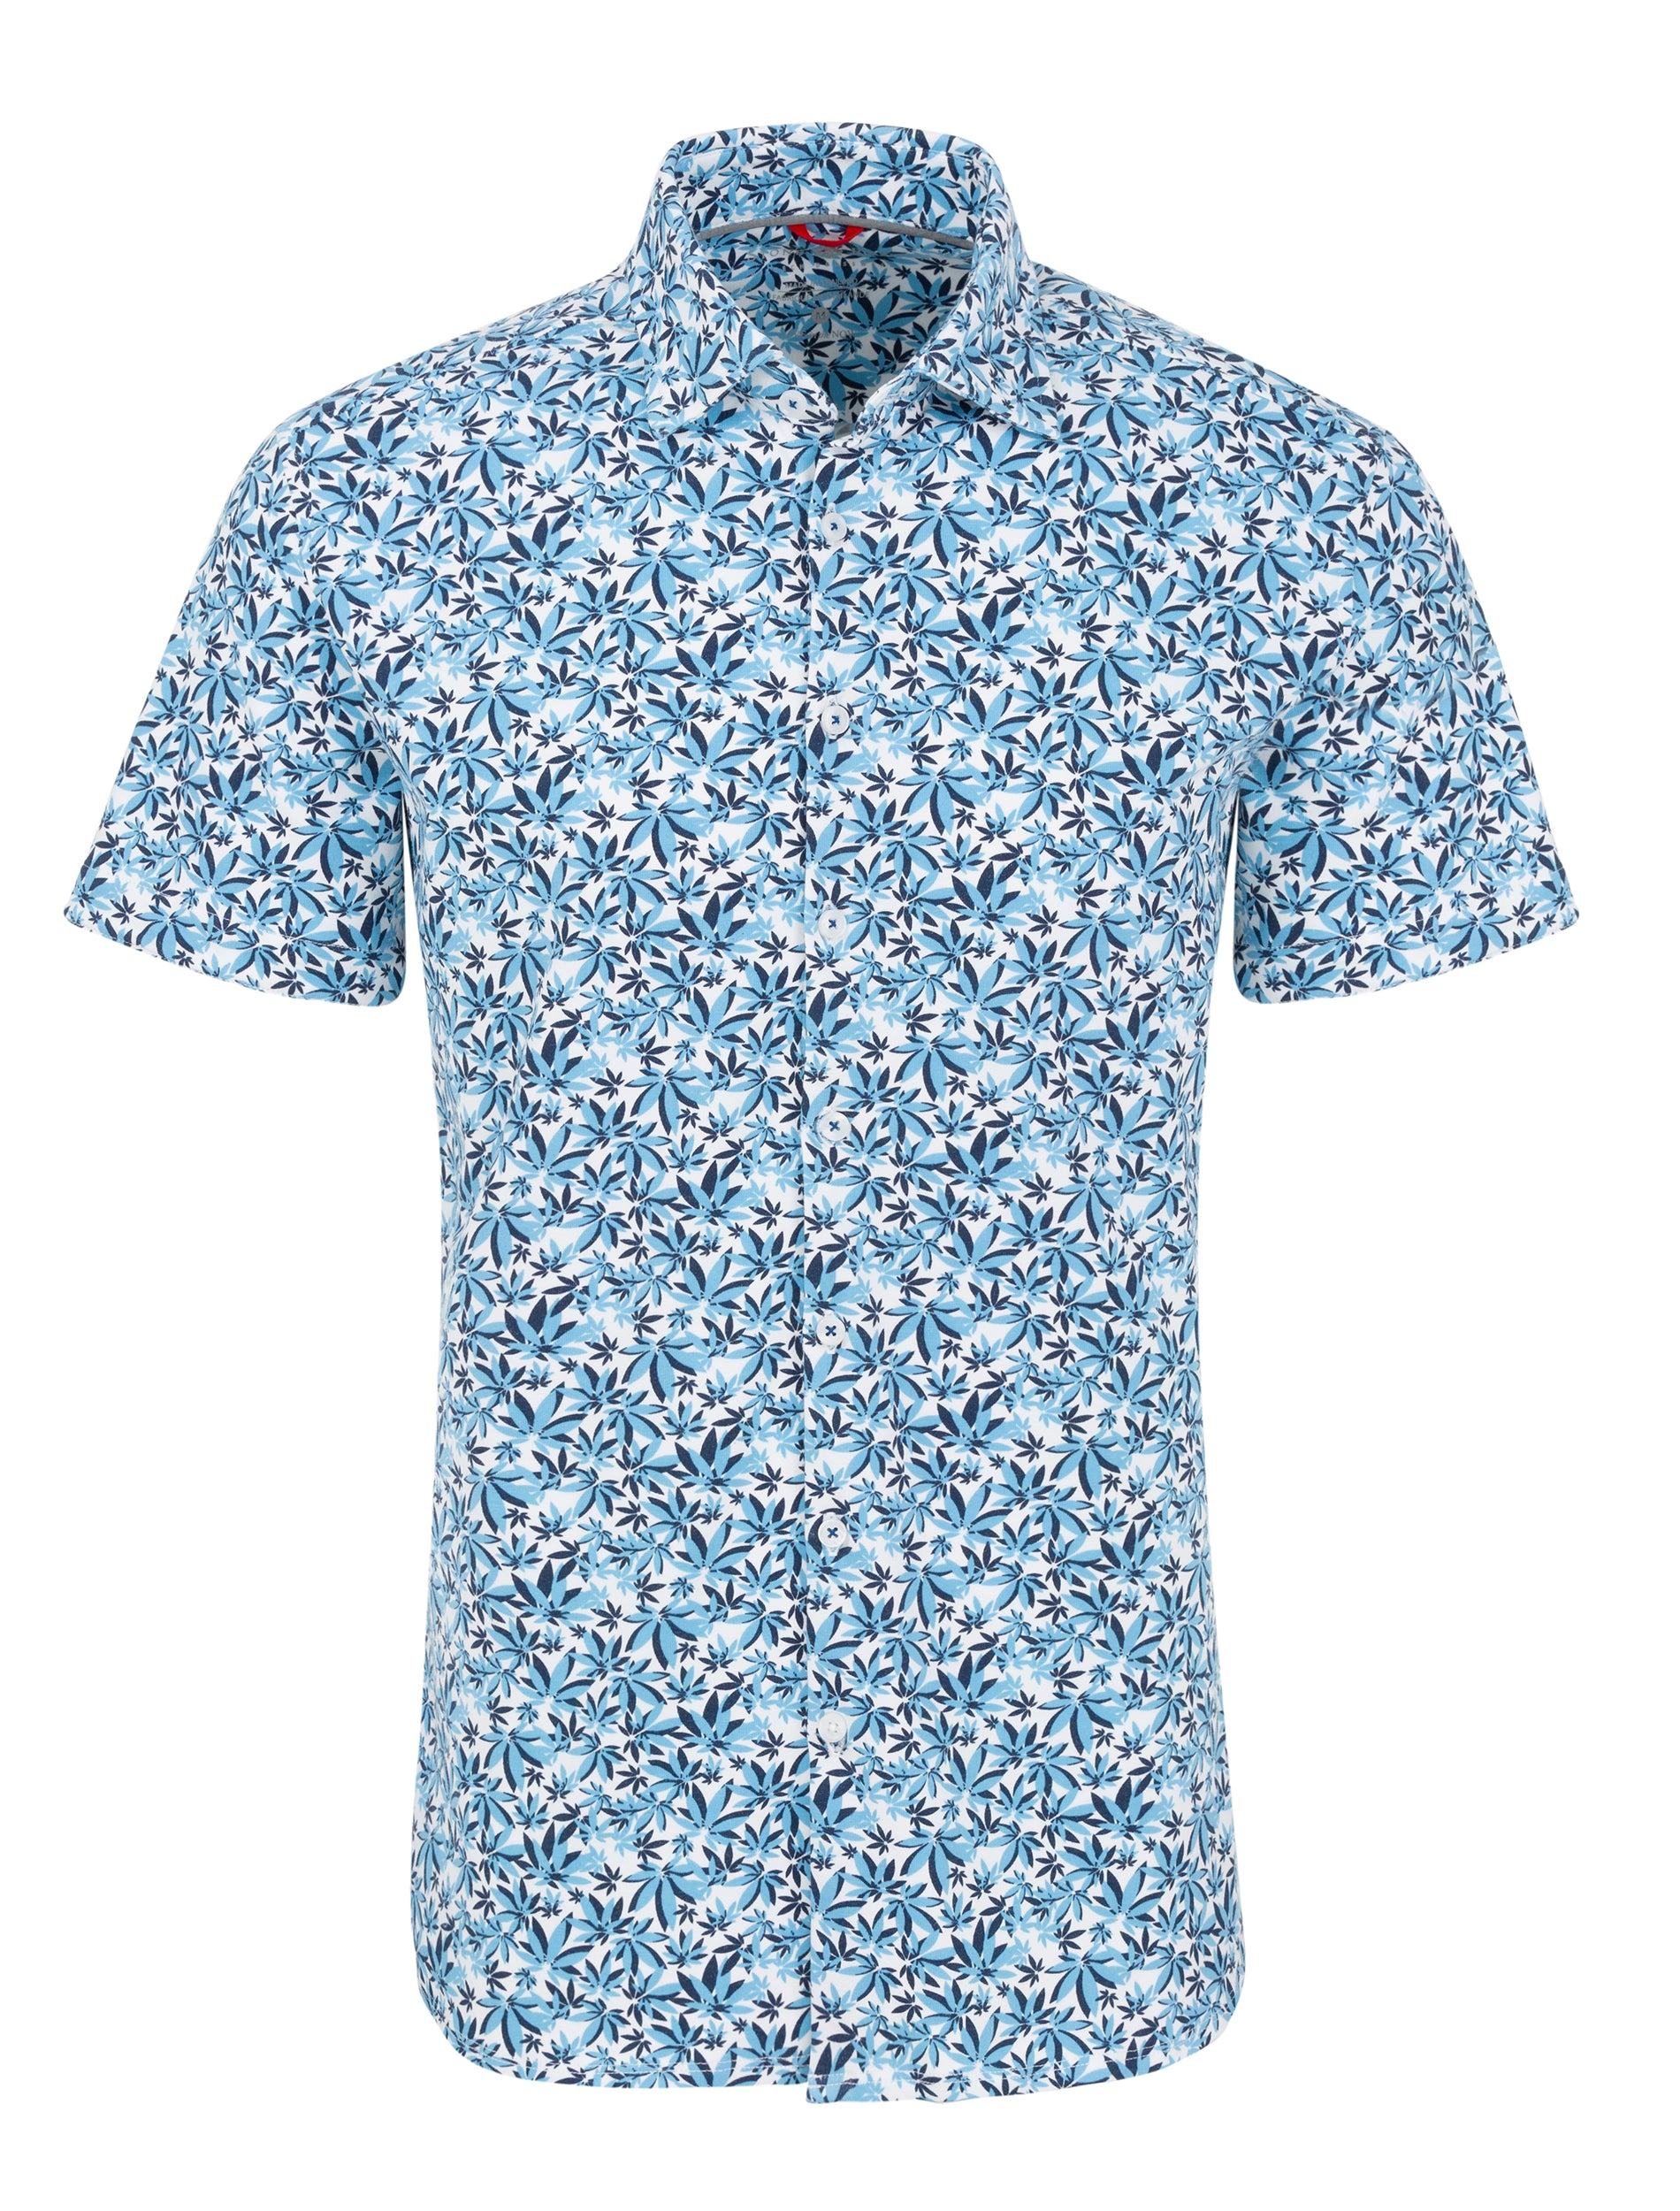 Blue Cannabis Leaves Knit Performance Short Sleeve Shirt-Stone Rose